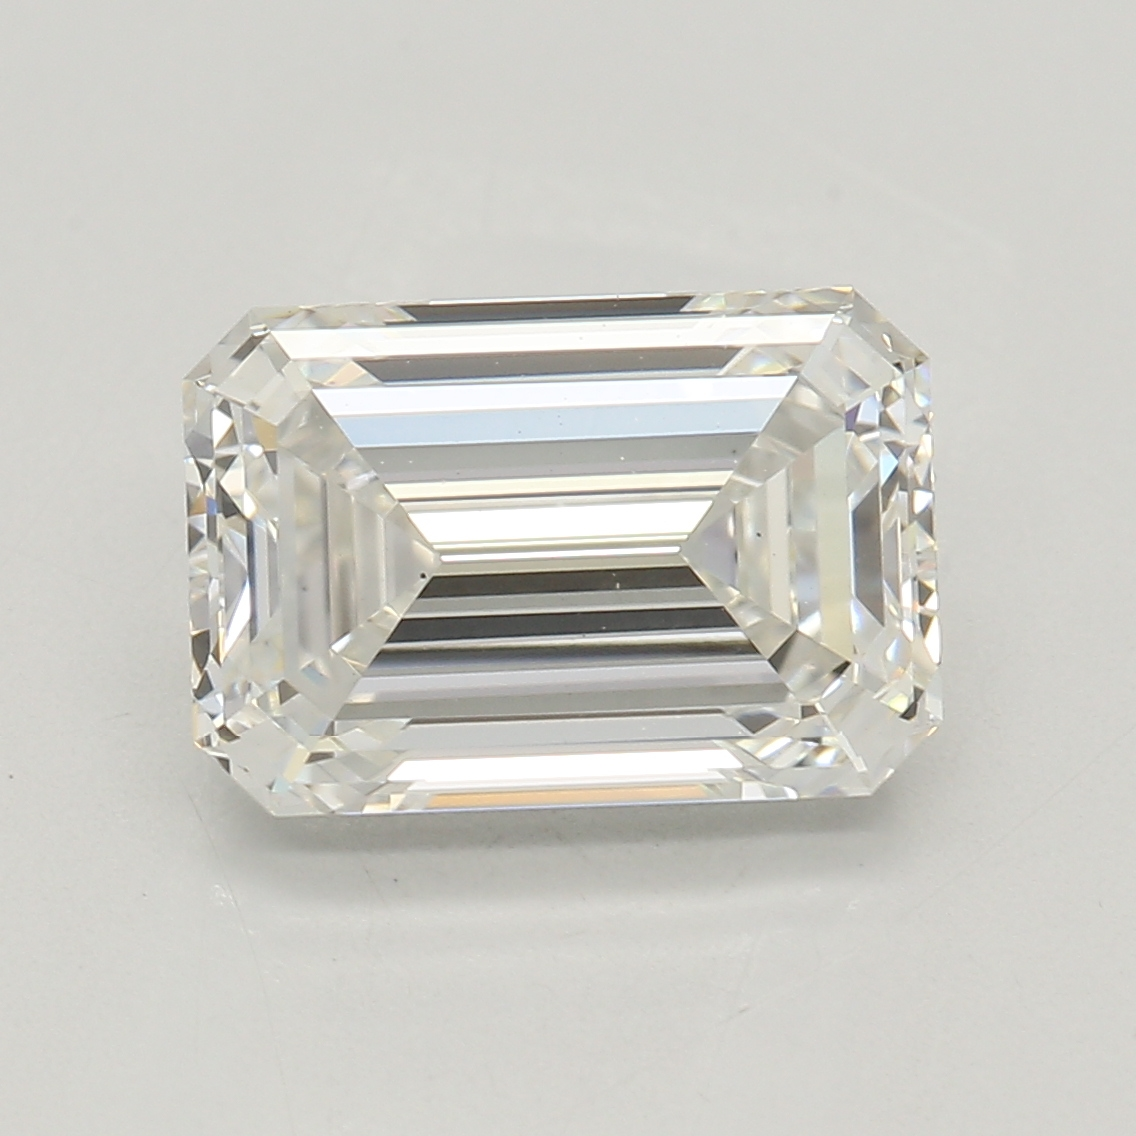 Emerald Cut 1.69 Carat H Color Vs1 Clarity Sku Lg2262506